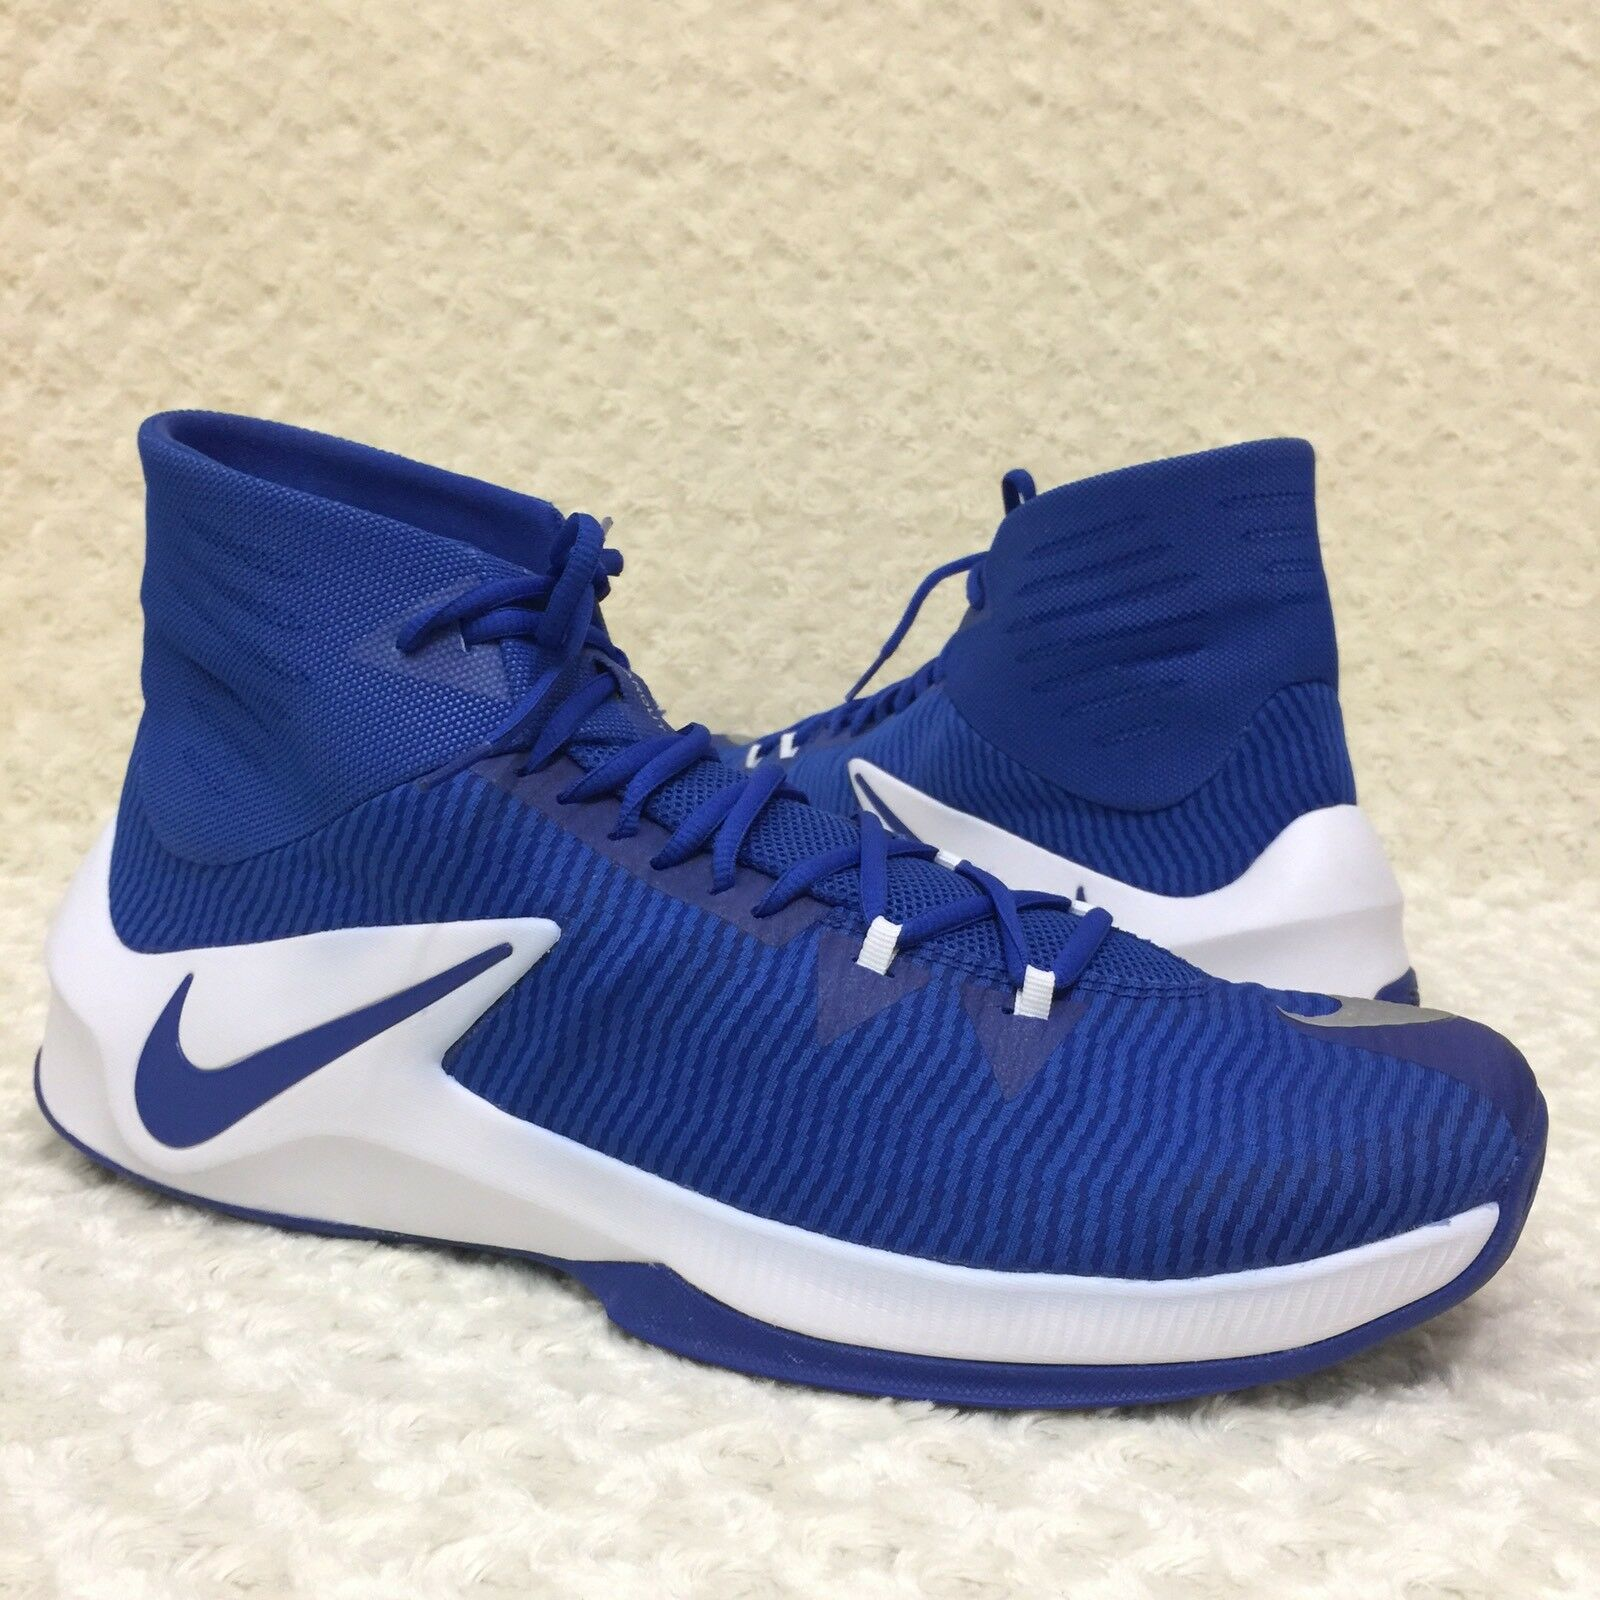 Nike Zoom Clear Out Big Size 17.5 US Basketball Shoes Blue White 856486-441 New